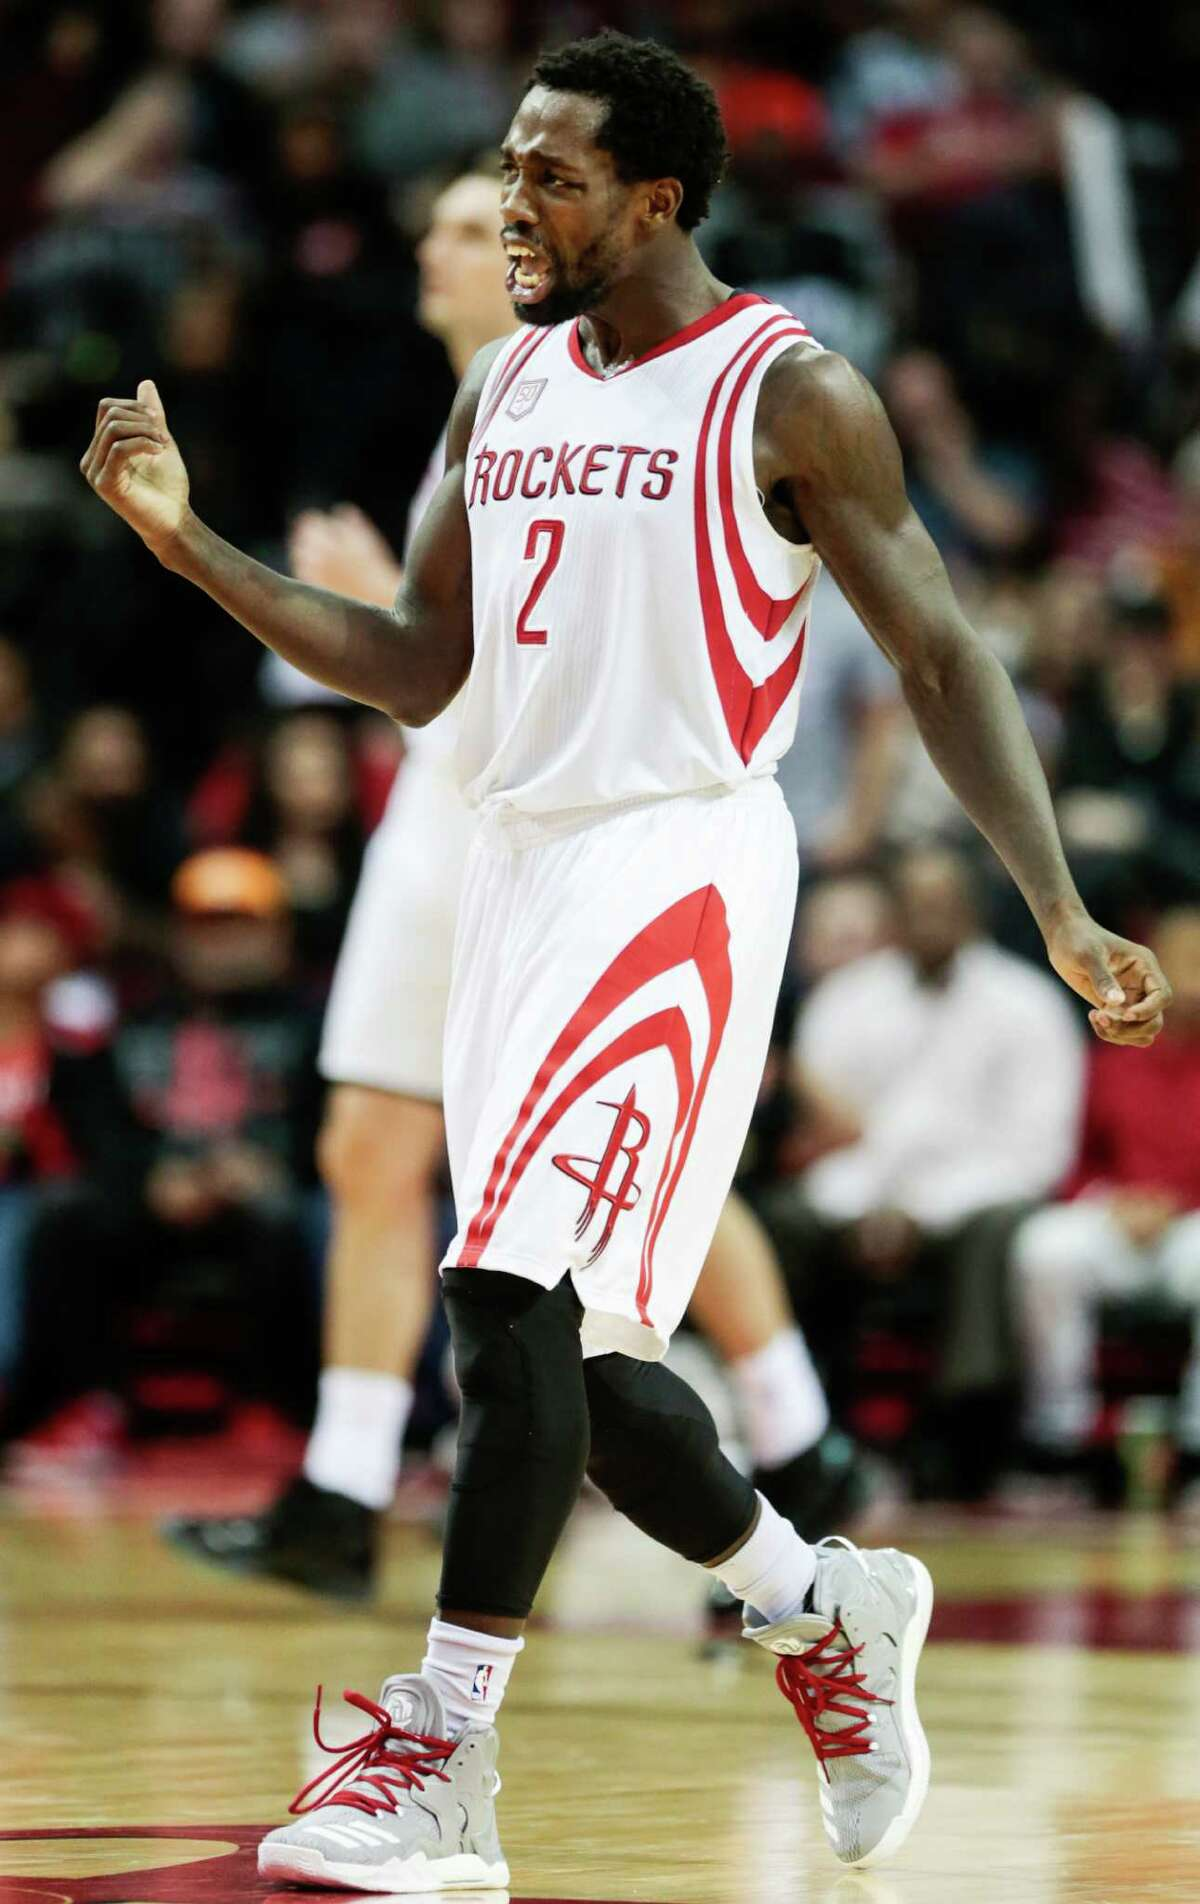 Houston Rockets guard Patrick Beverley (2) reacts after dishing off an assist against the Sacramento Kings during the second half of an NBA basketball game at Toyota Center on Wednesday, Dec. 14, 2016, in Houston.